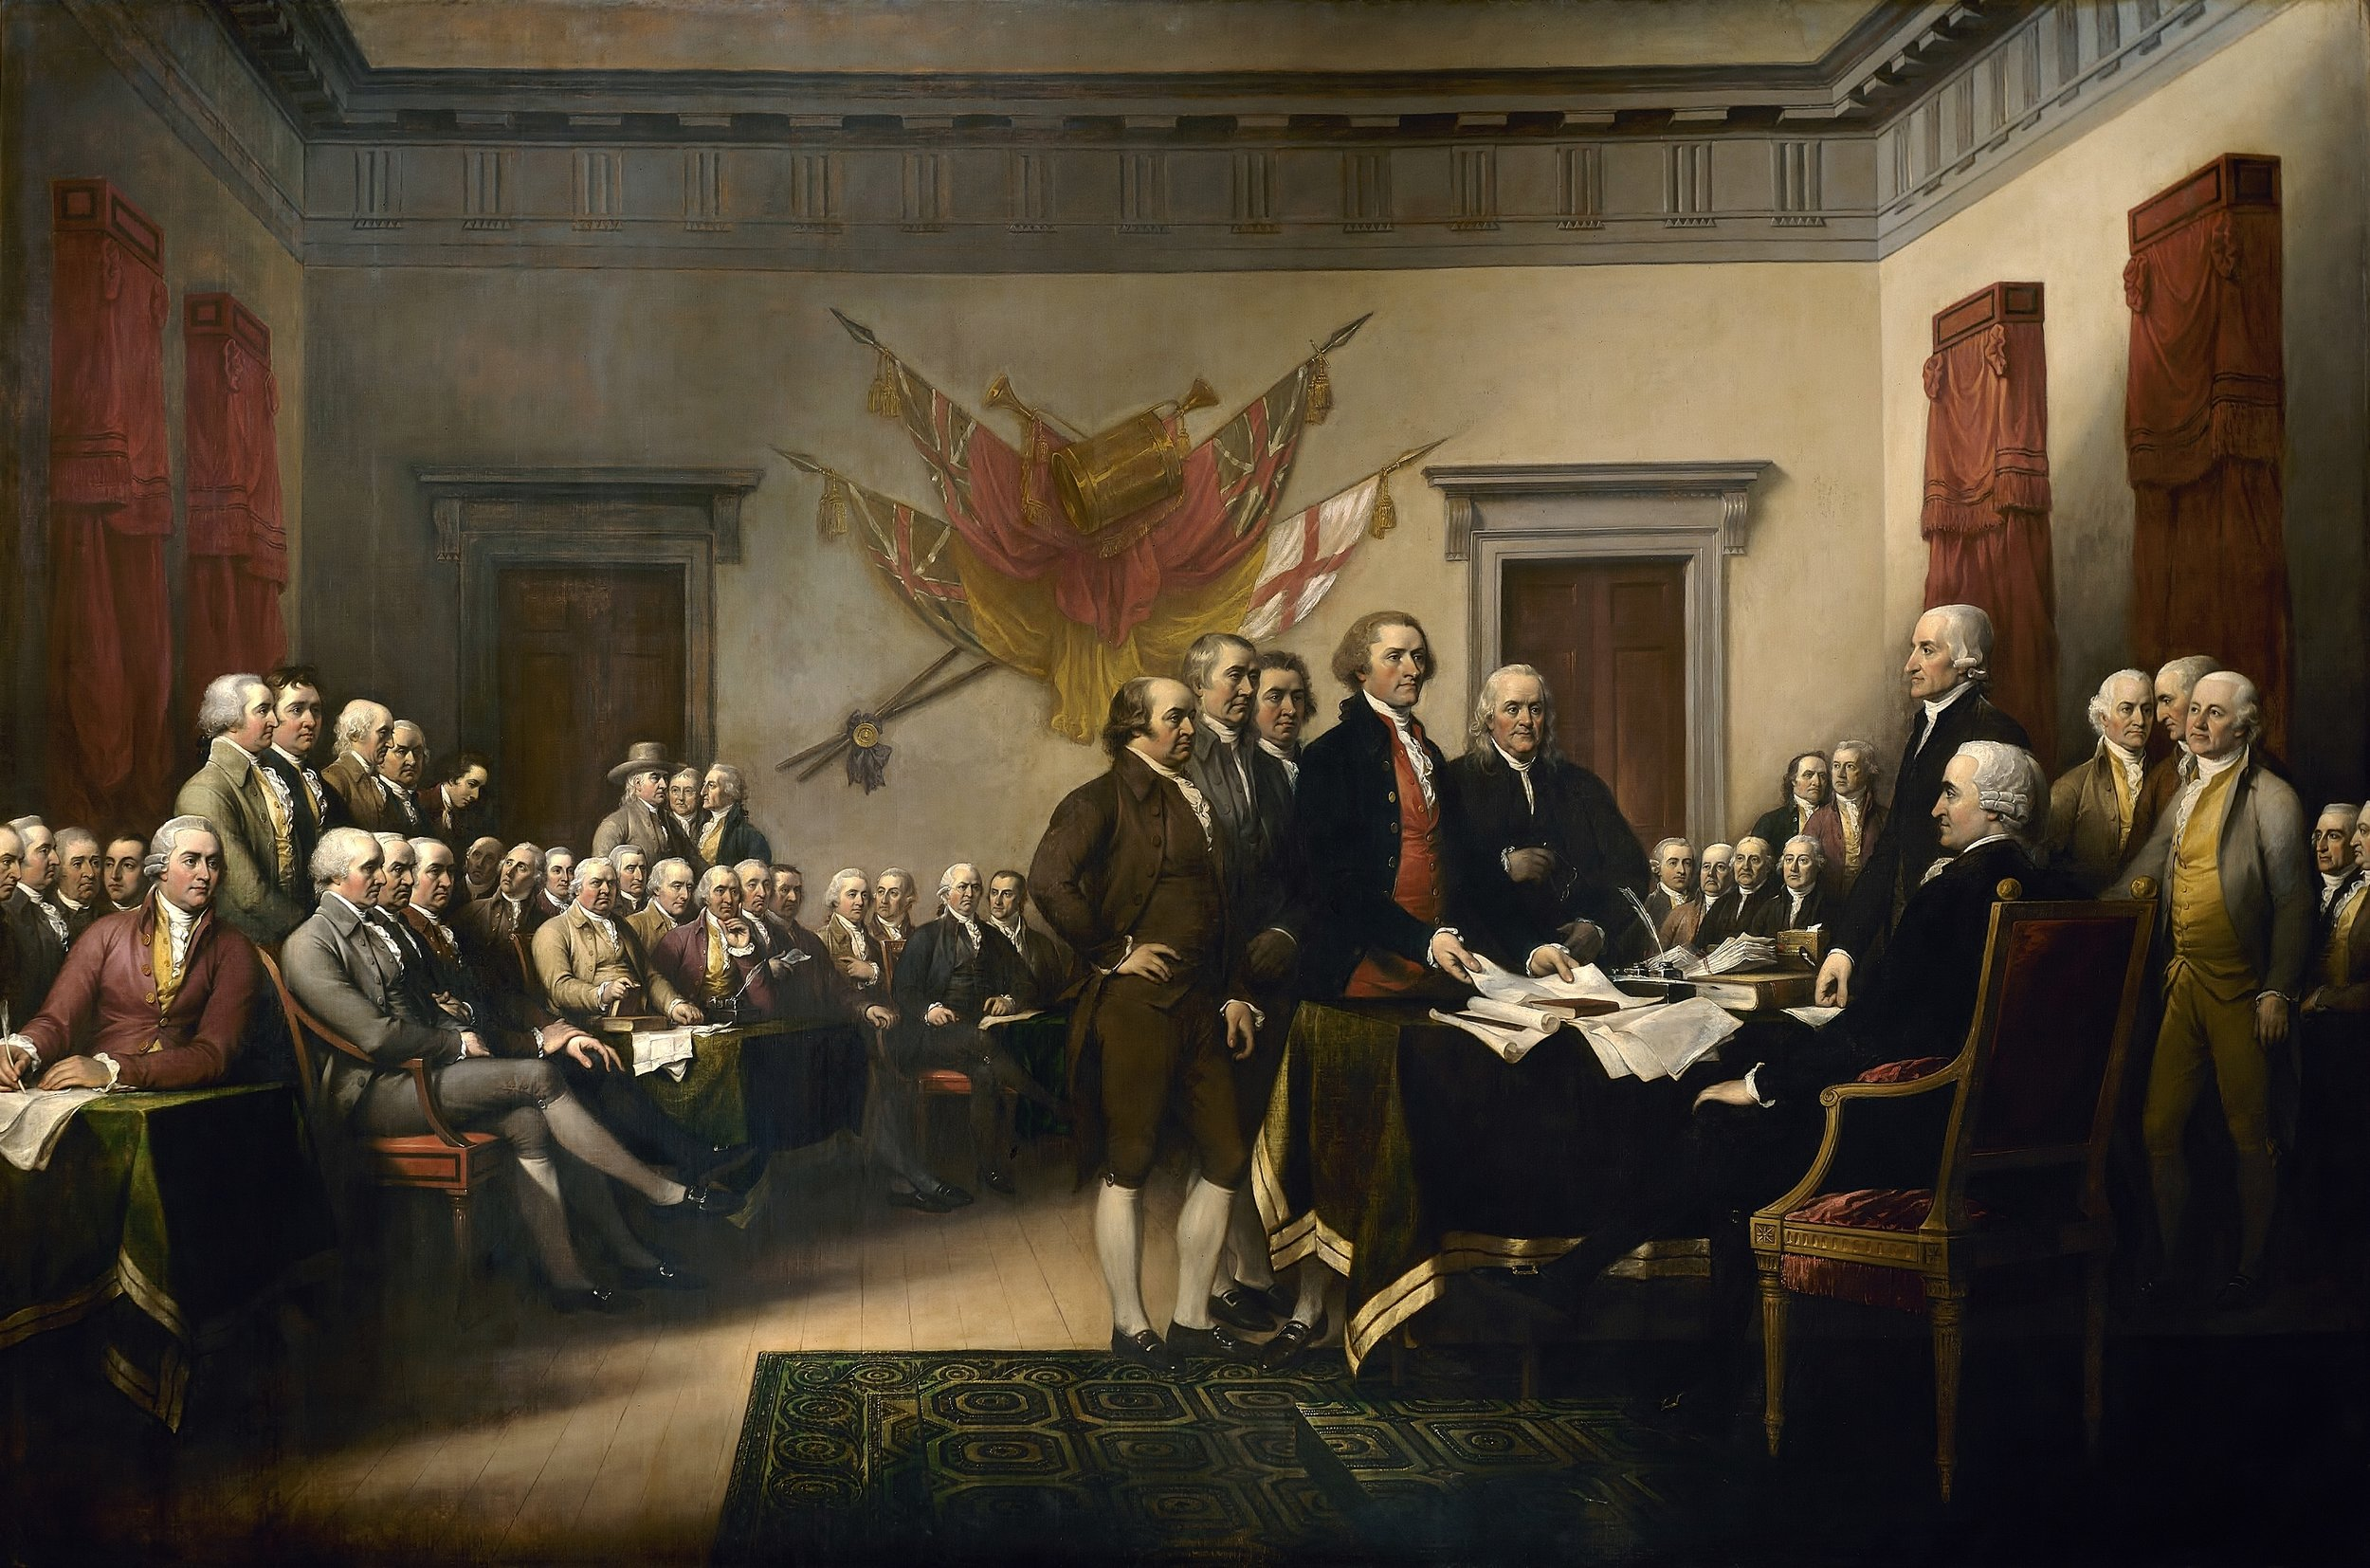 Declaration of Independence (1819) by John Trumbull. PC: wikimedia.org